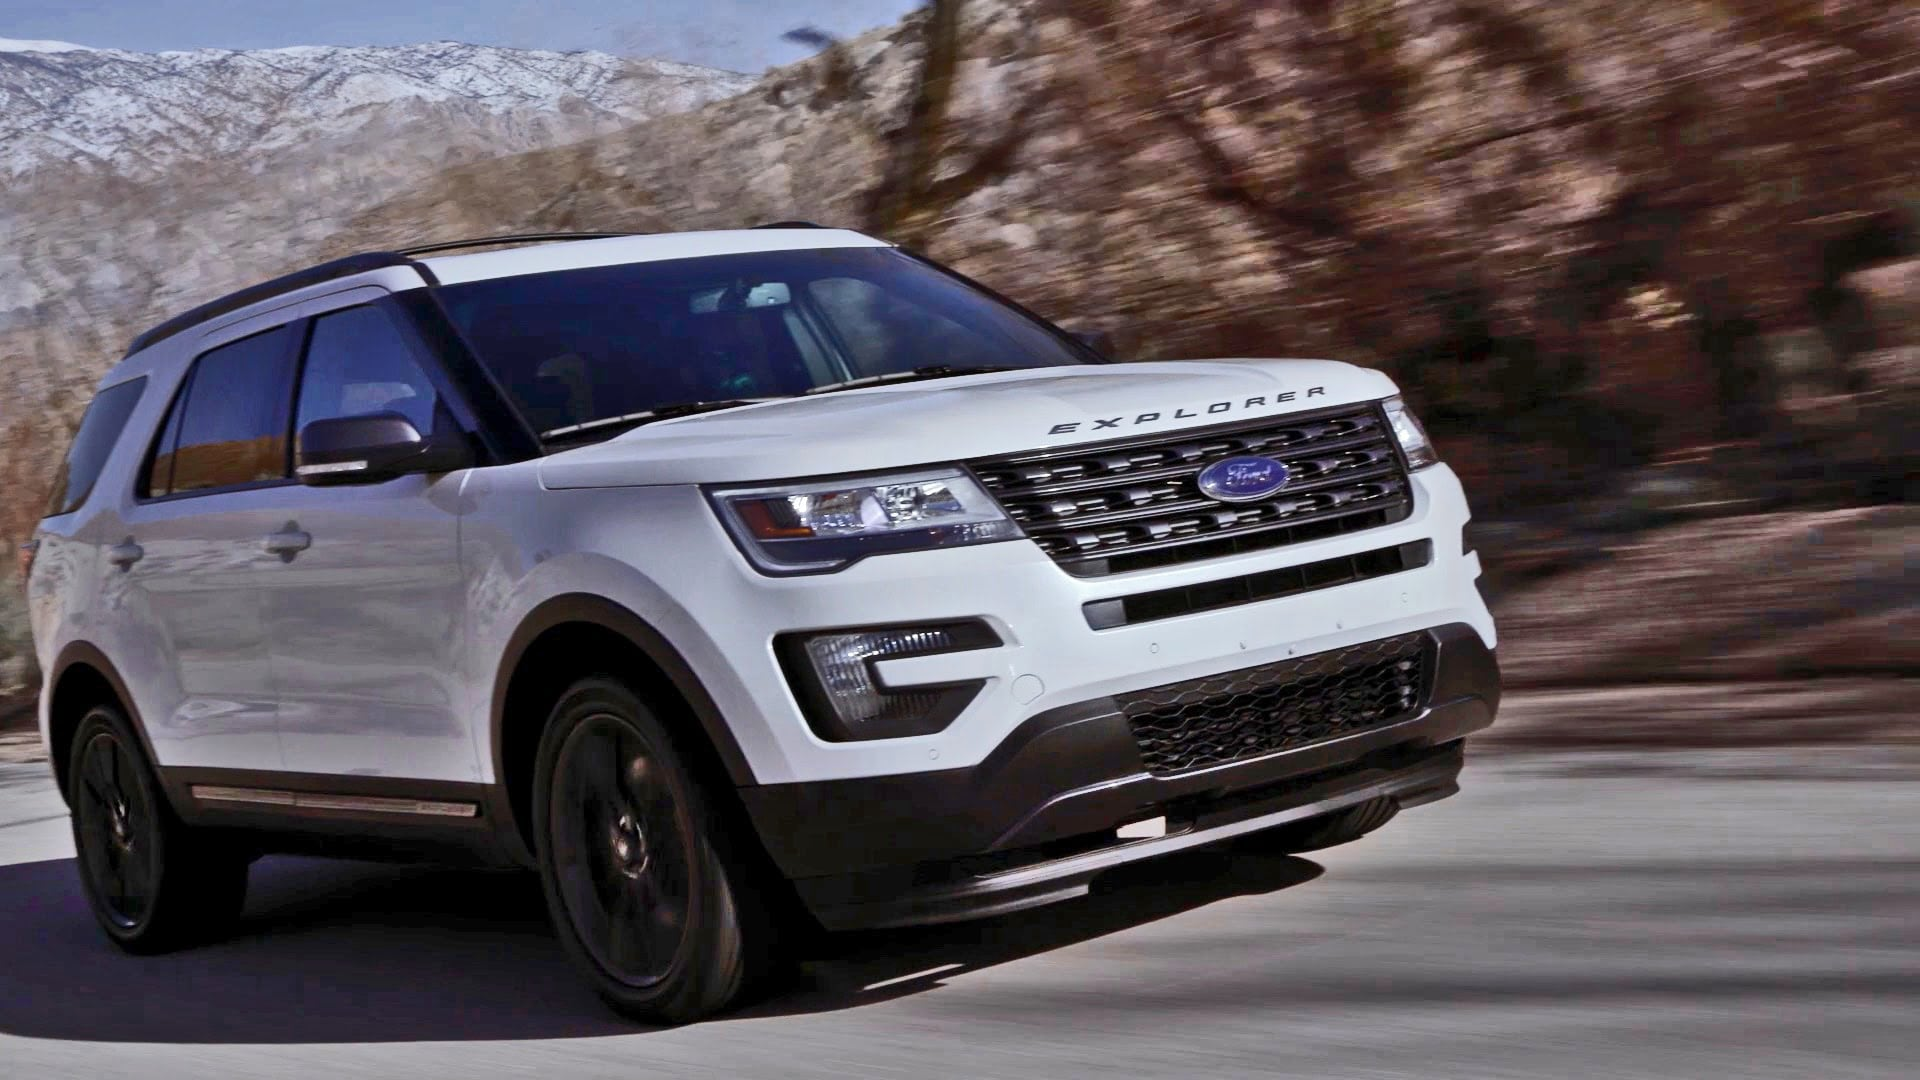 2017 Ford Explorer at Motor City in Colorado Springs